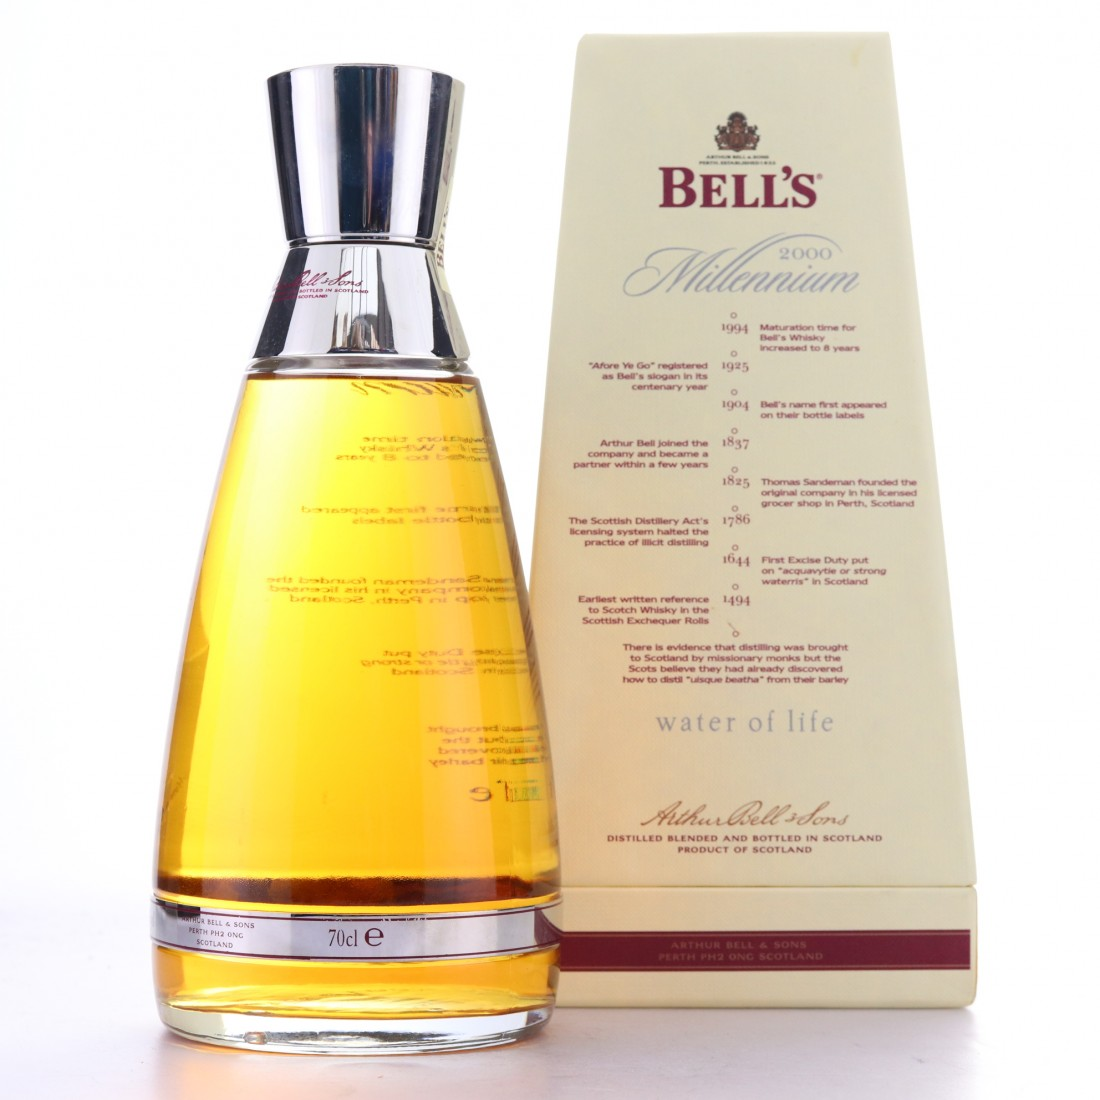 Bell's 8 Year Old Millennium Decanter